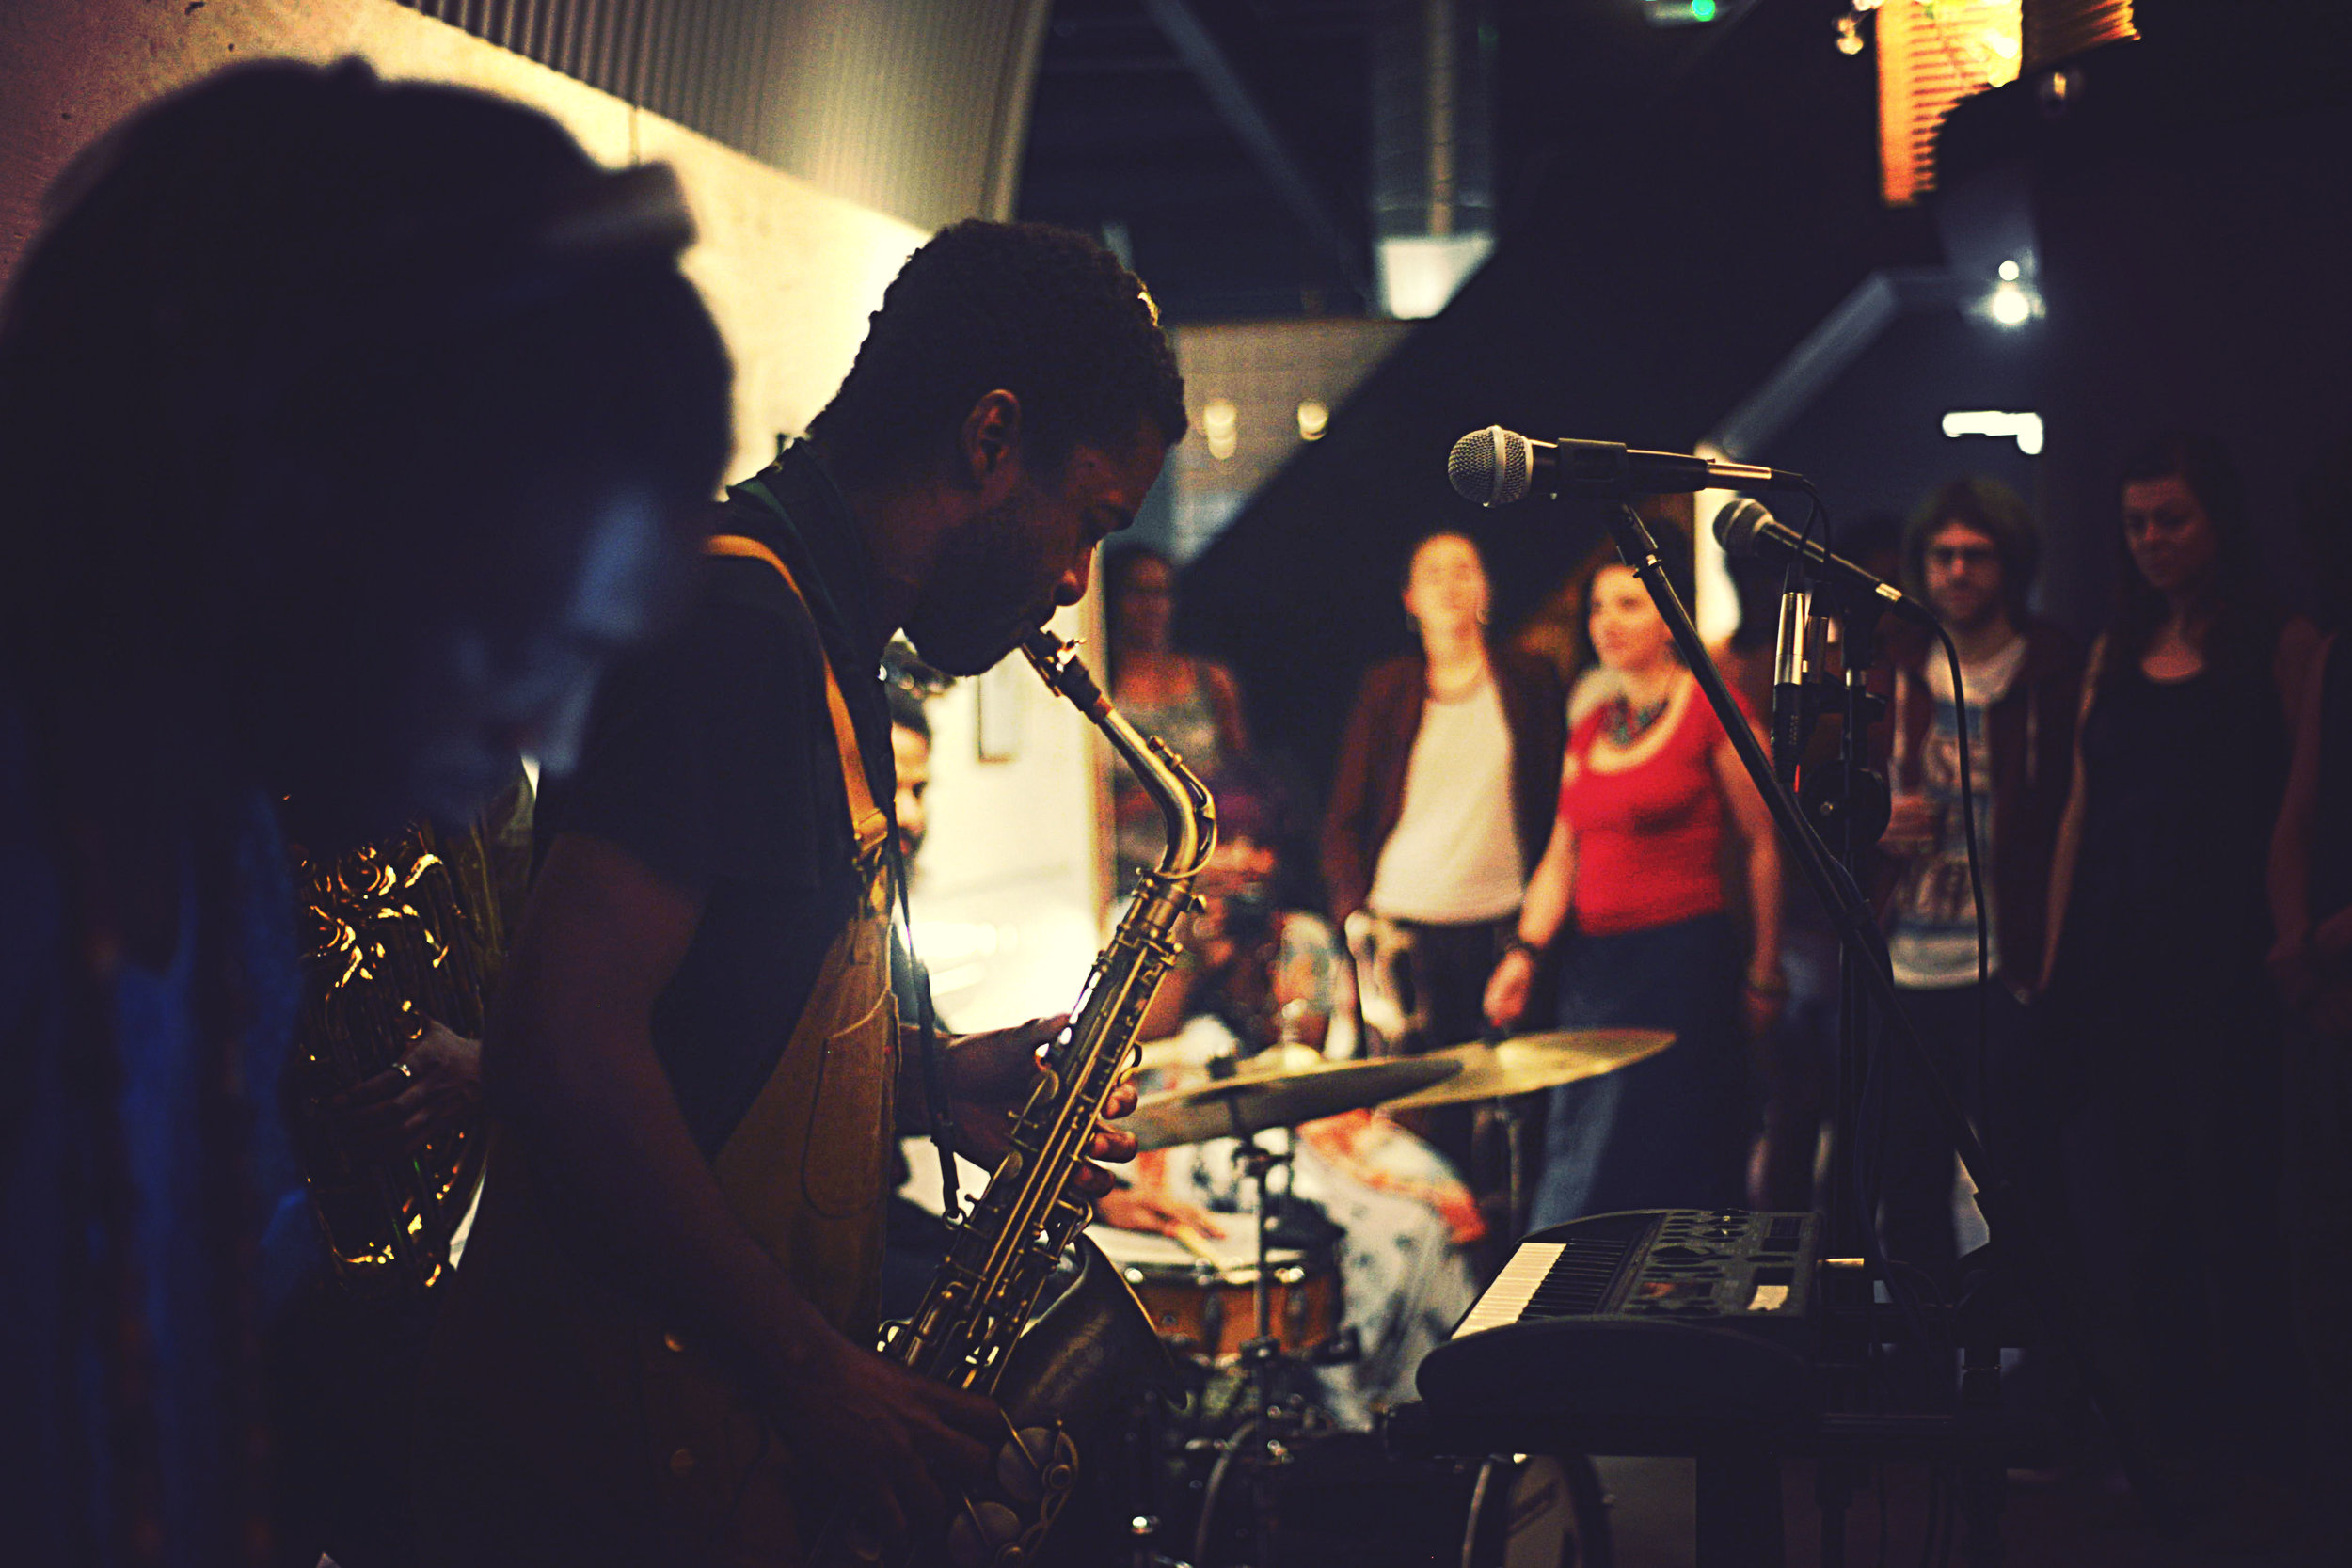 WEDNESDAYS: LIVE MUSIC - What started out as a small weekly jam session, Wednesdays at Buster Mantis have grown into some of London's most compelling jazz nights, featuring some of the brightest new talents from British jazz.